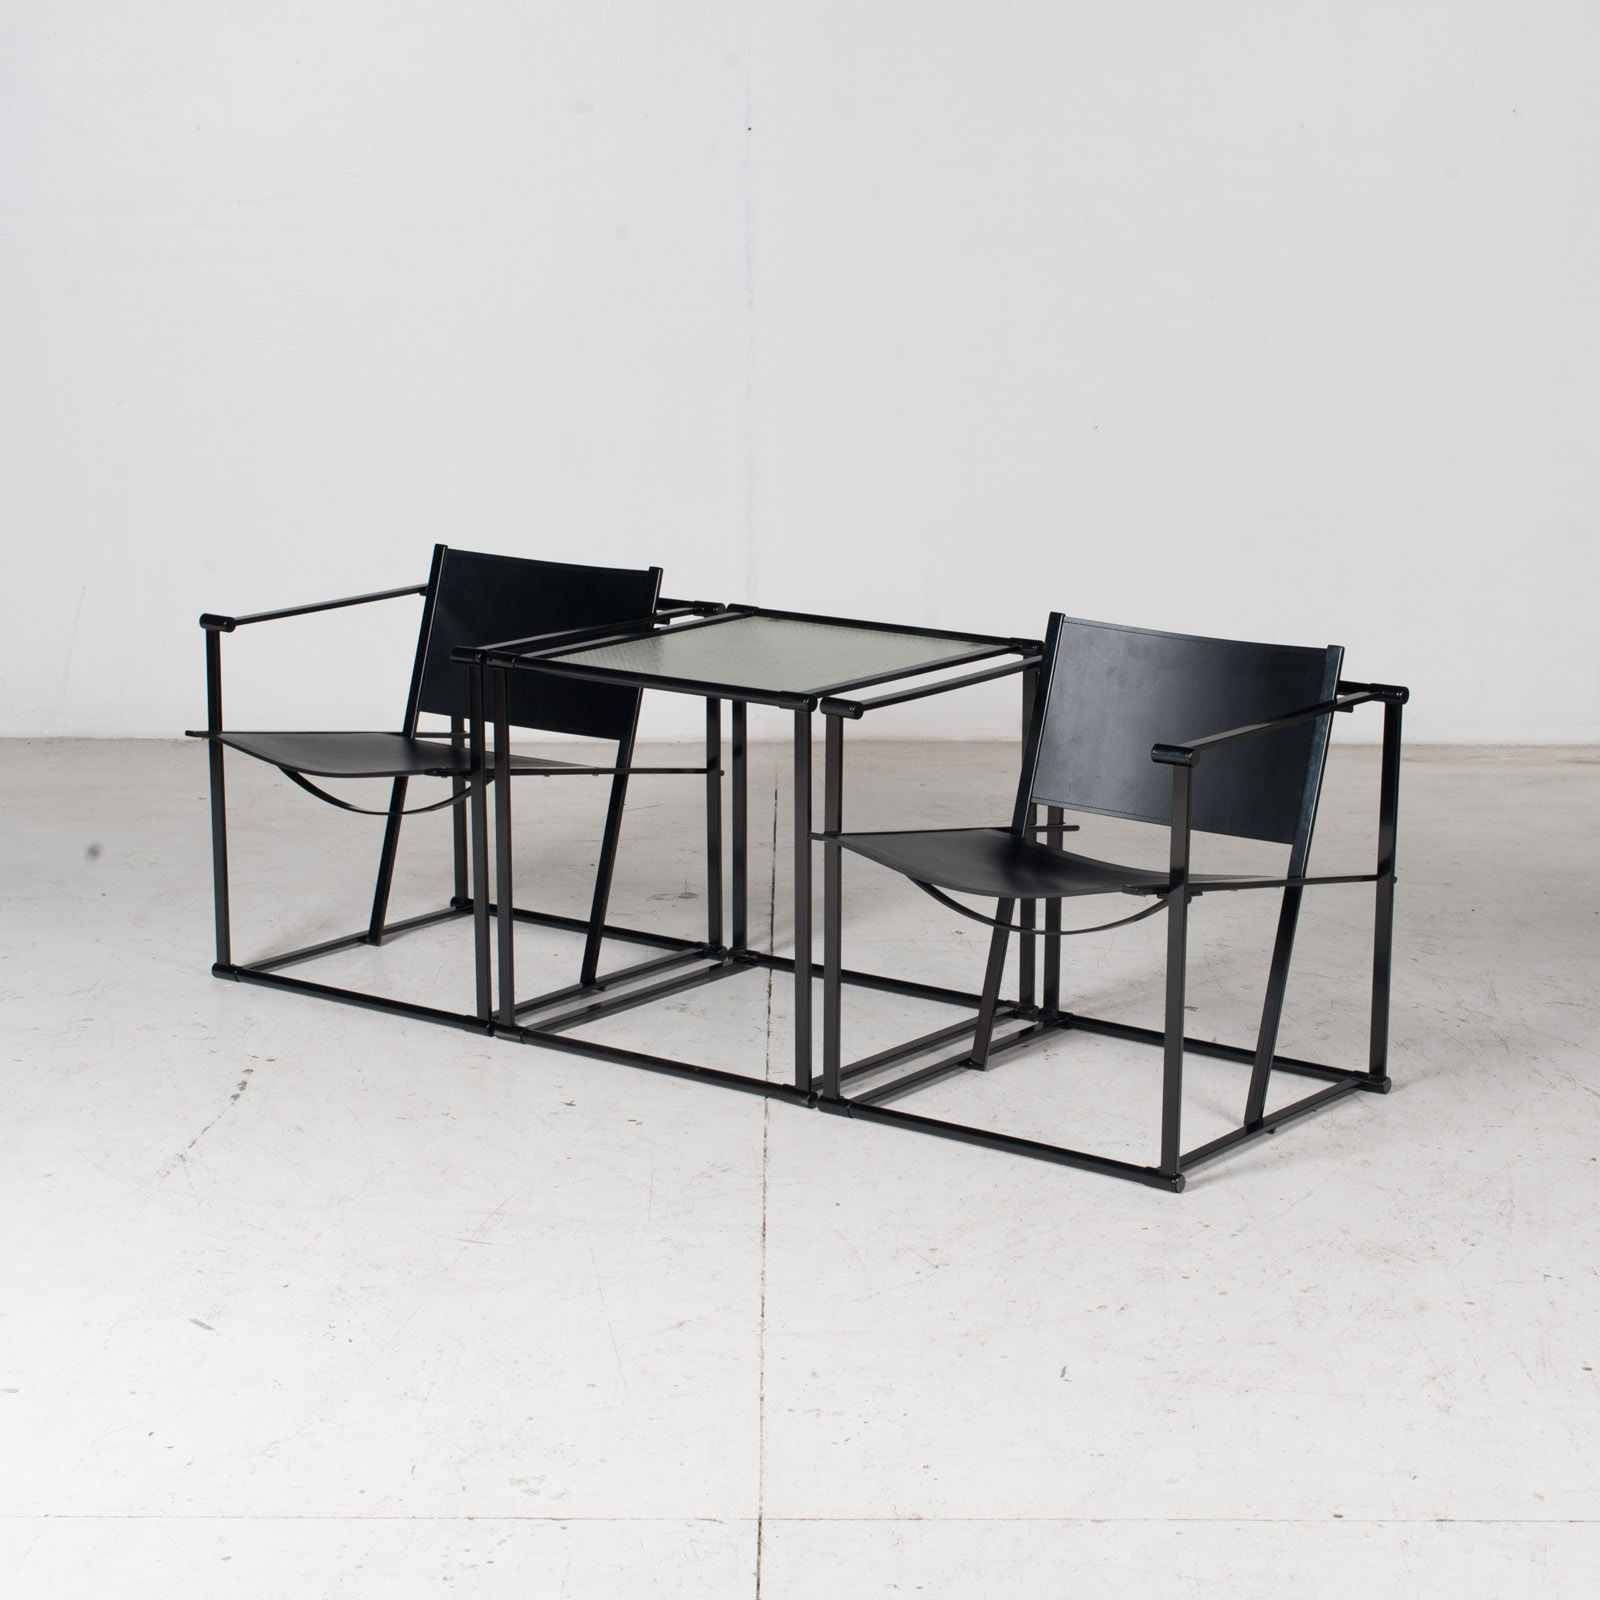 Pair Of Fm60 Cubic Chairs With Table By Radboud Van Beekum For Pastoe, 1980s, The Netherlands 16